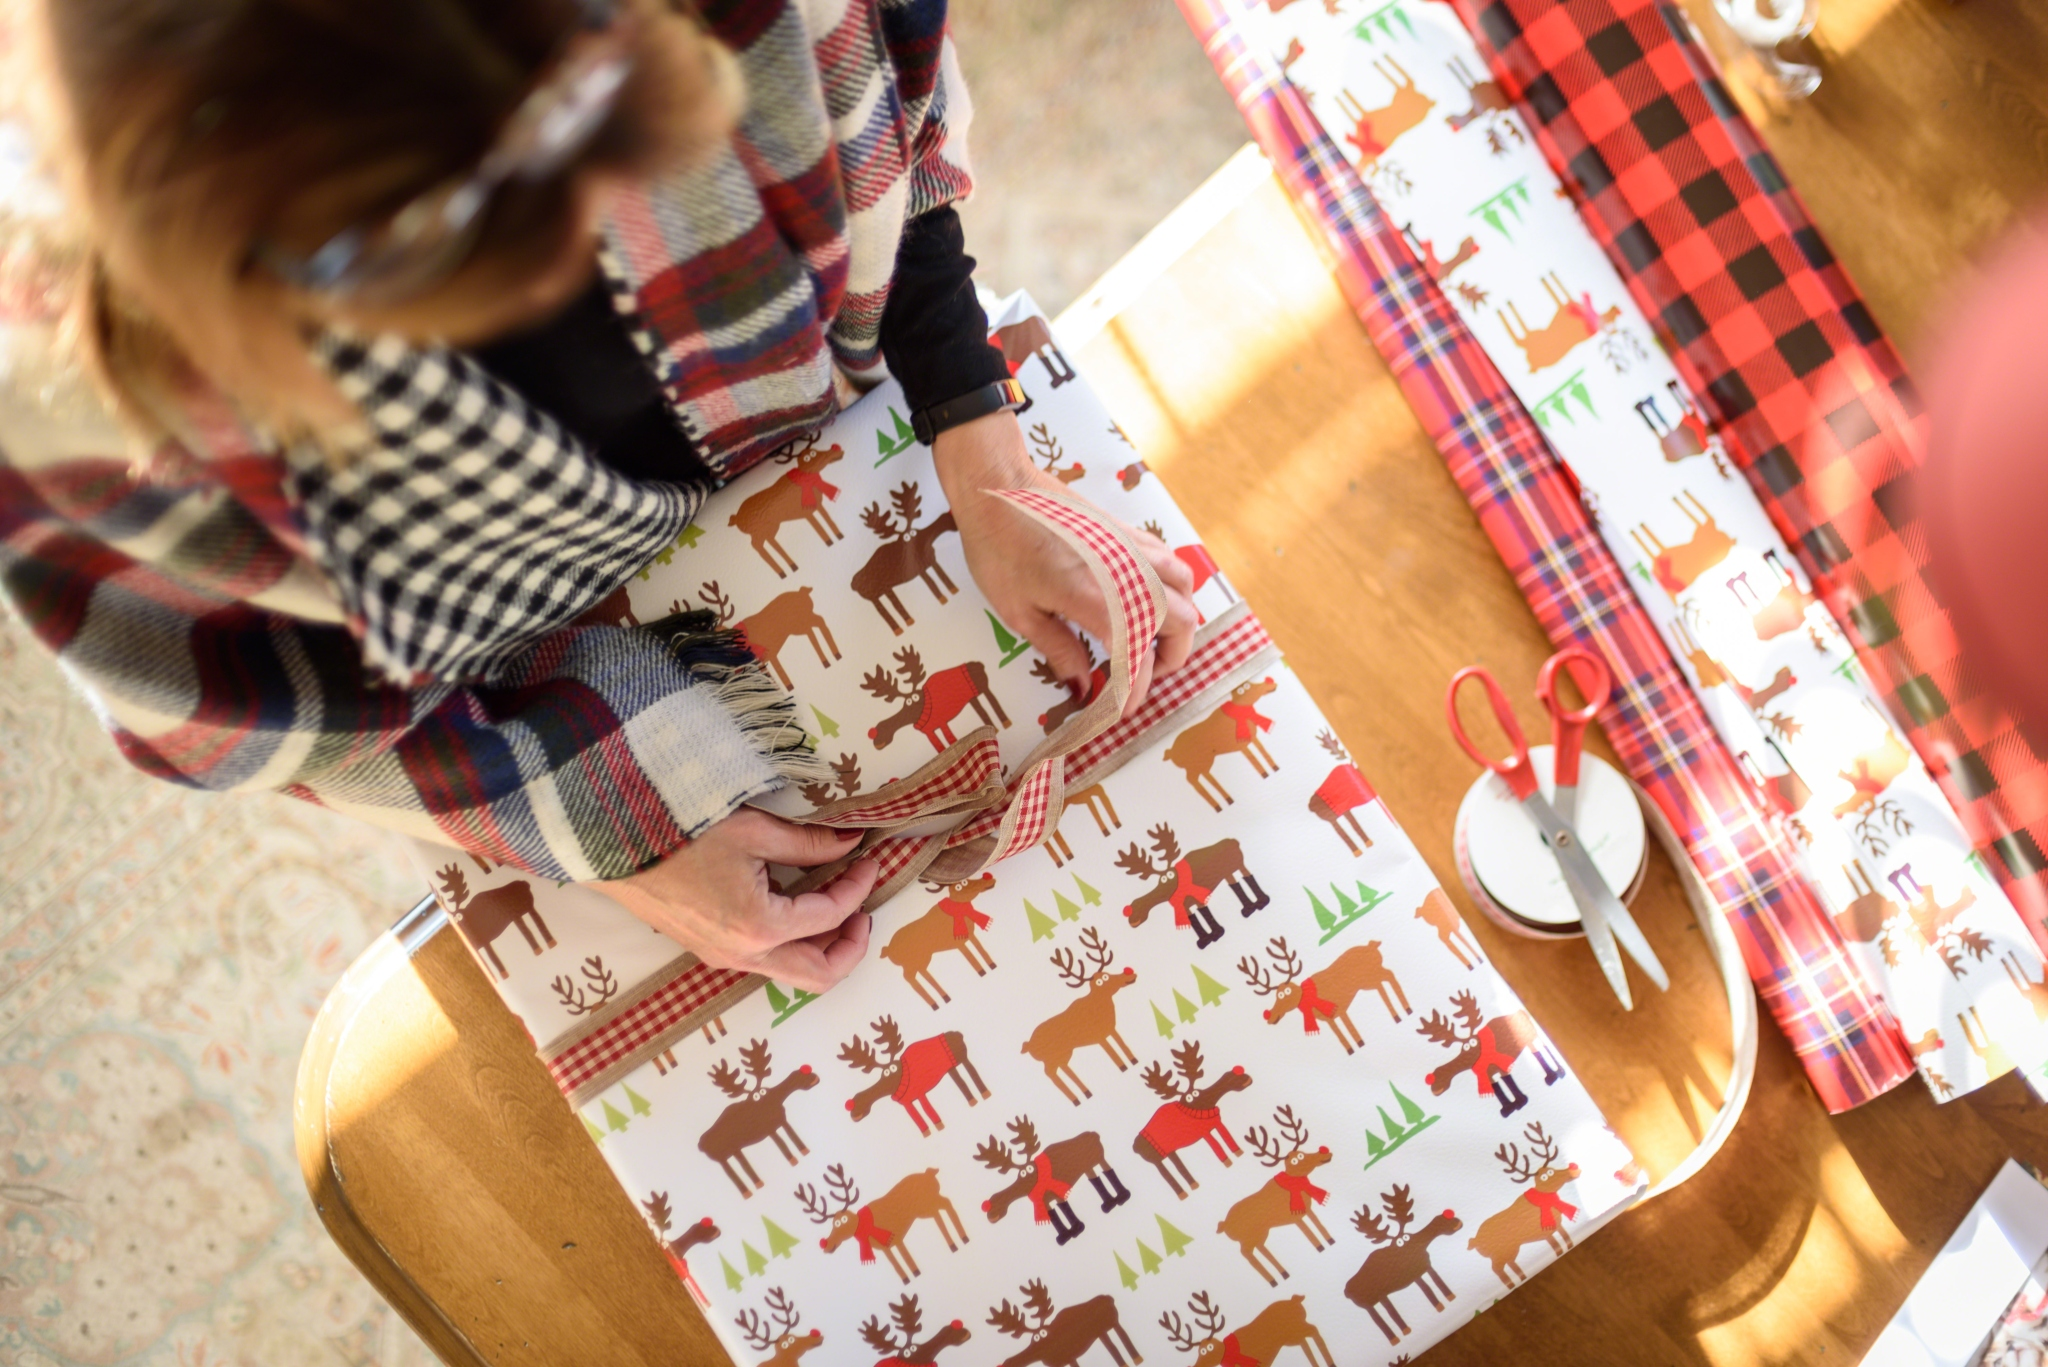 A woman wrapping Christmas gifts for her family that she purchased at the Celtic Croft online